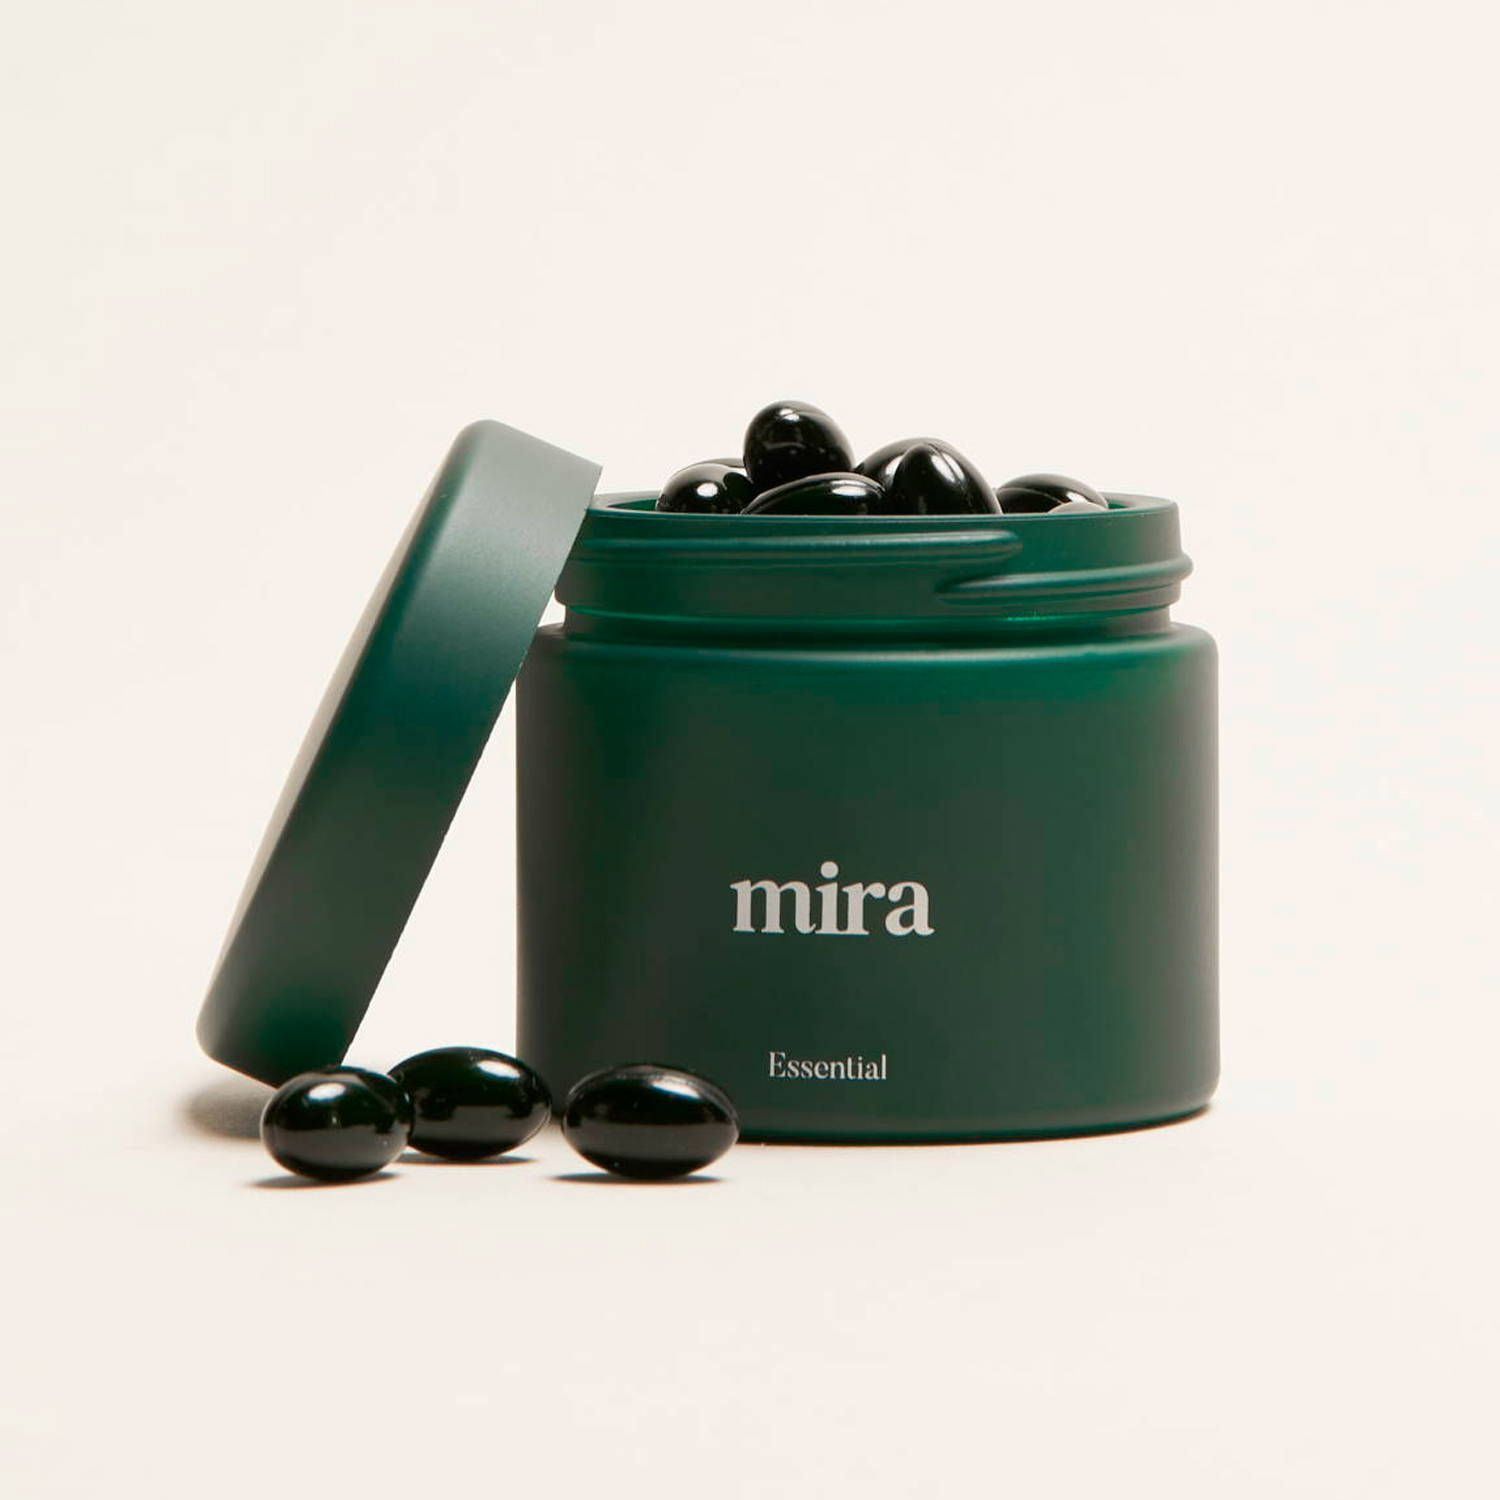 mira Essential. A multivitamin with key nutrients